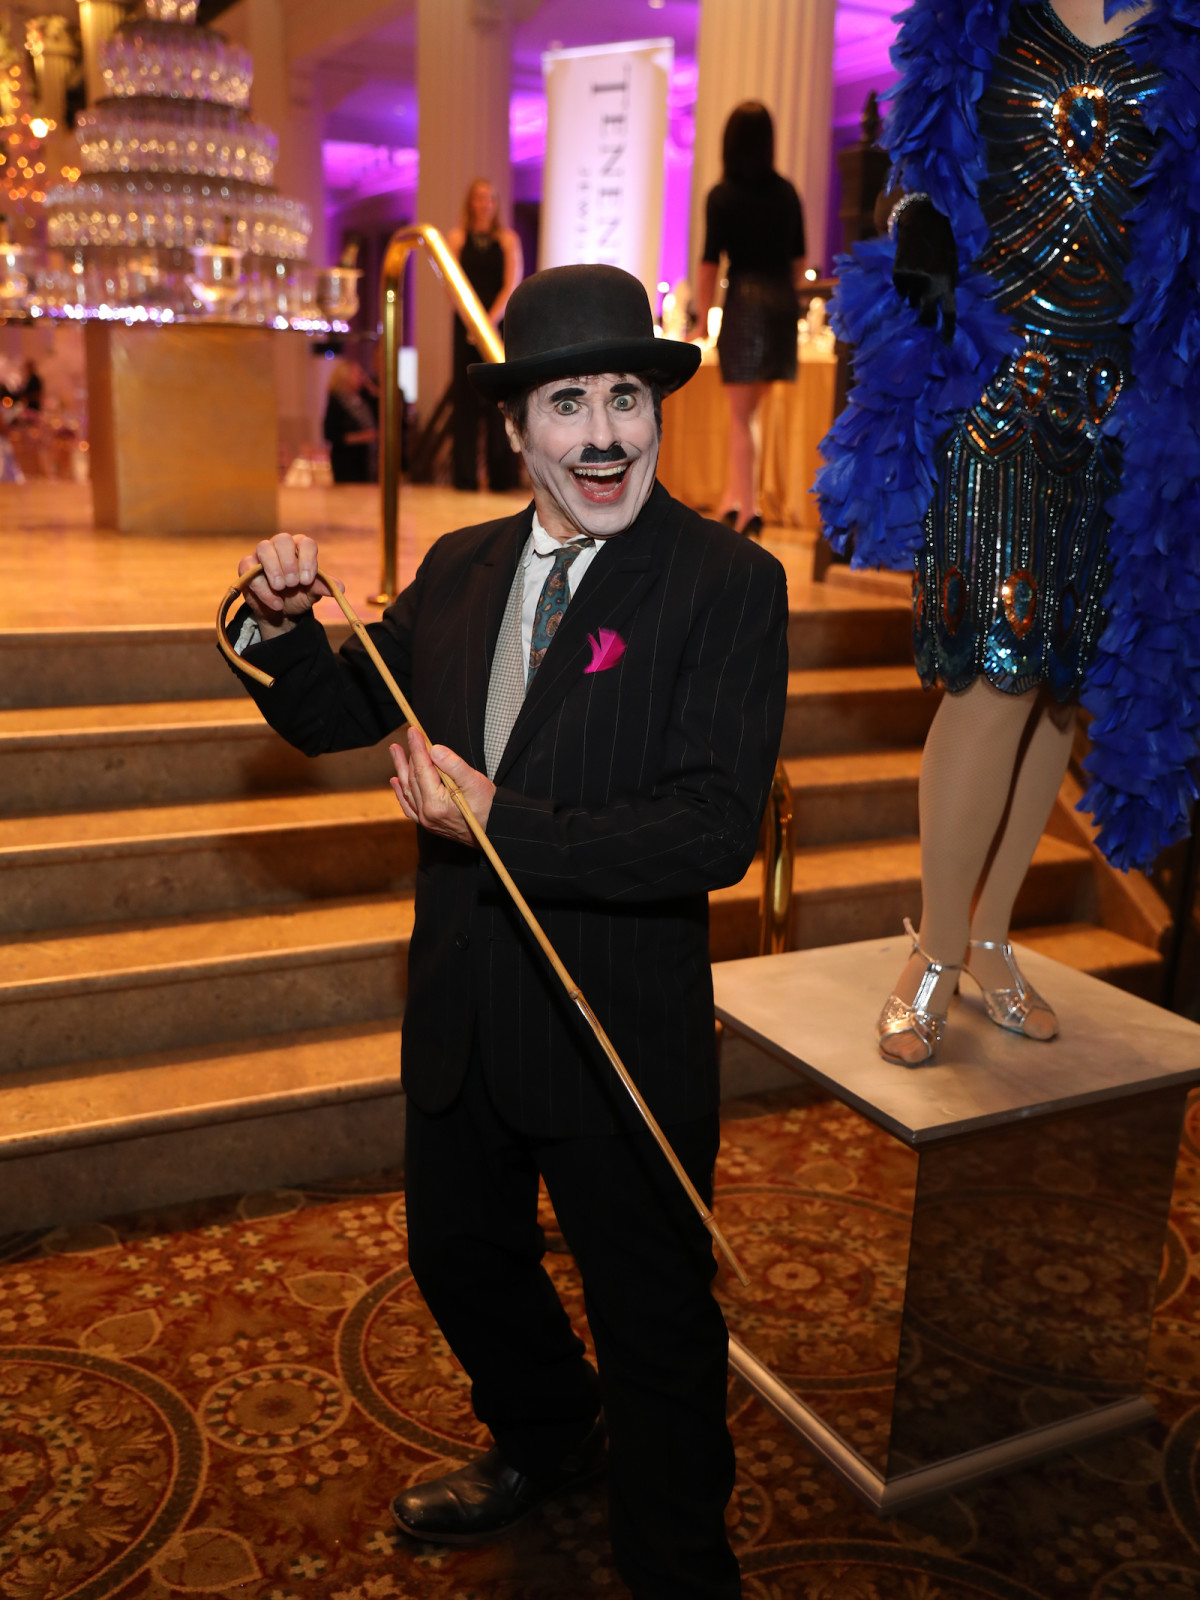 Houston, March of Dimes Signature Chefs, November 2017, Charlie Chaplin impersonator